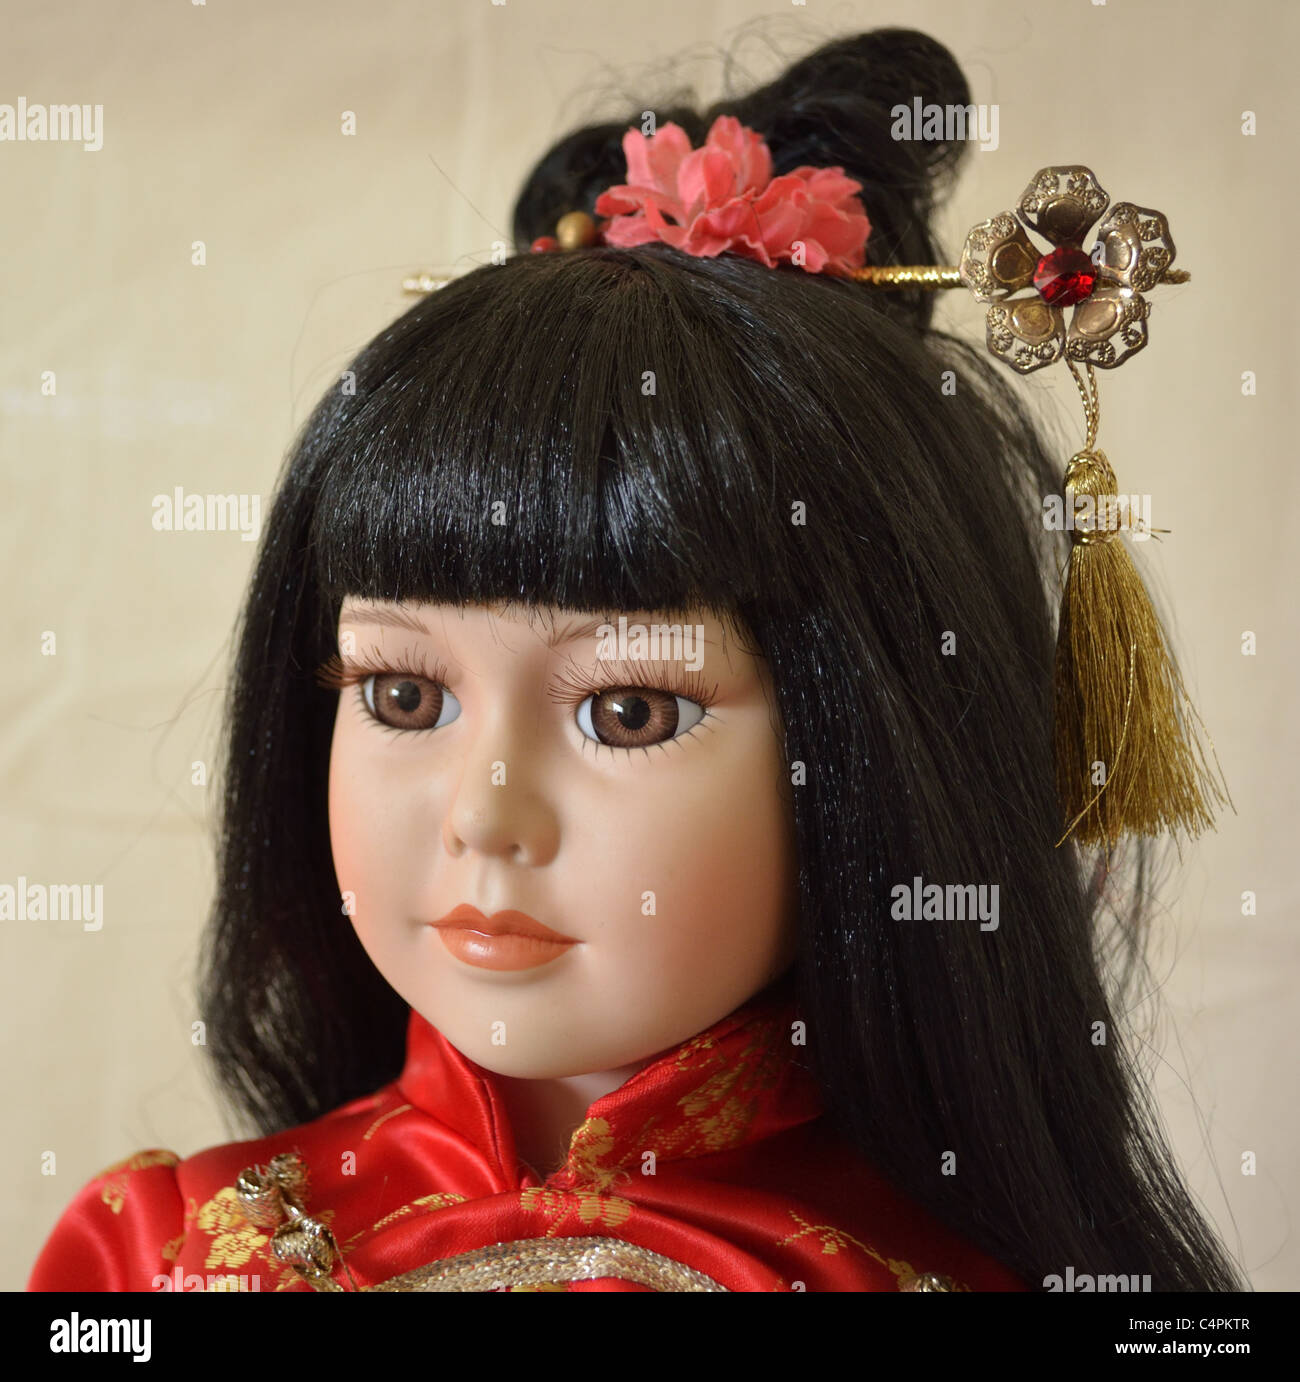 Dolls & Bears Dolls Chinese Doll